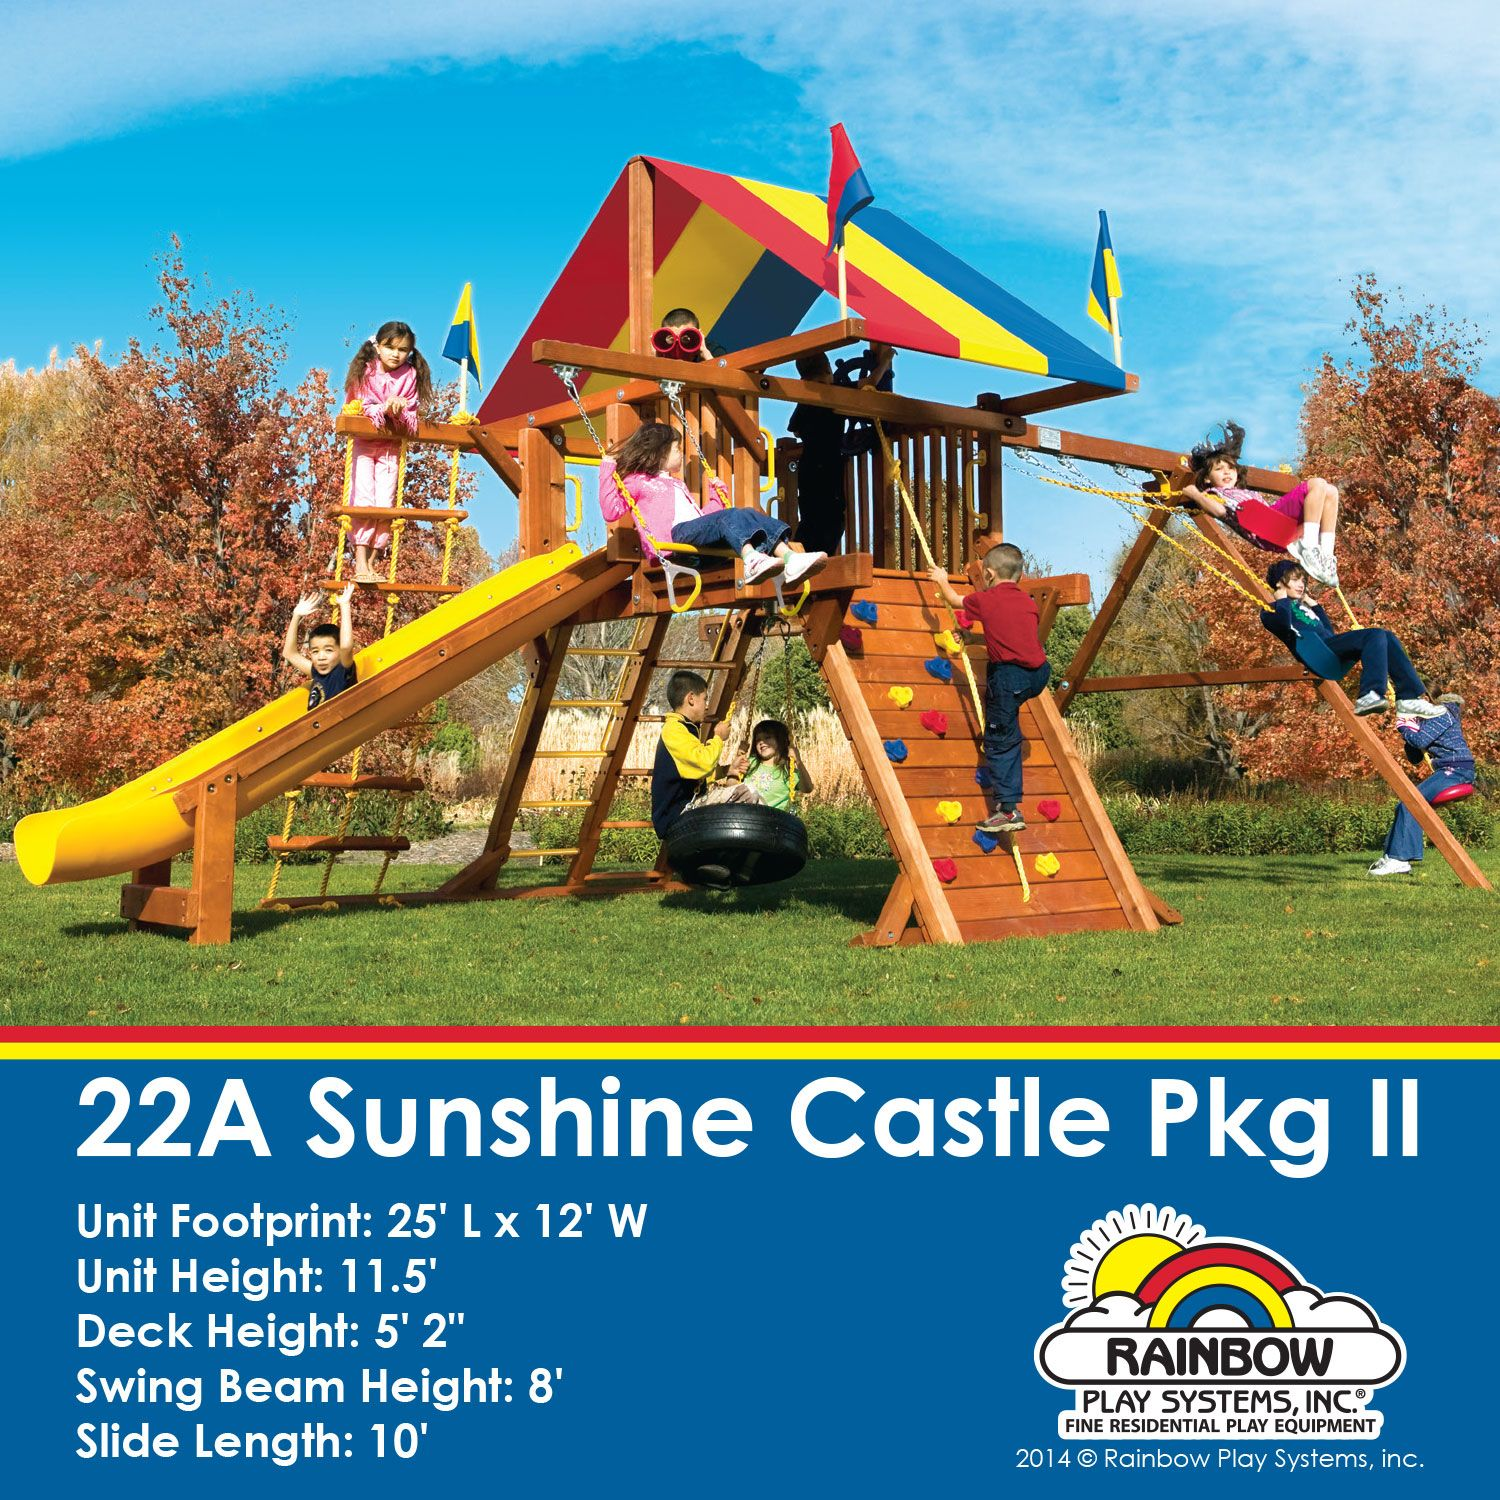 our sunshine castle is one of our most popular play systems